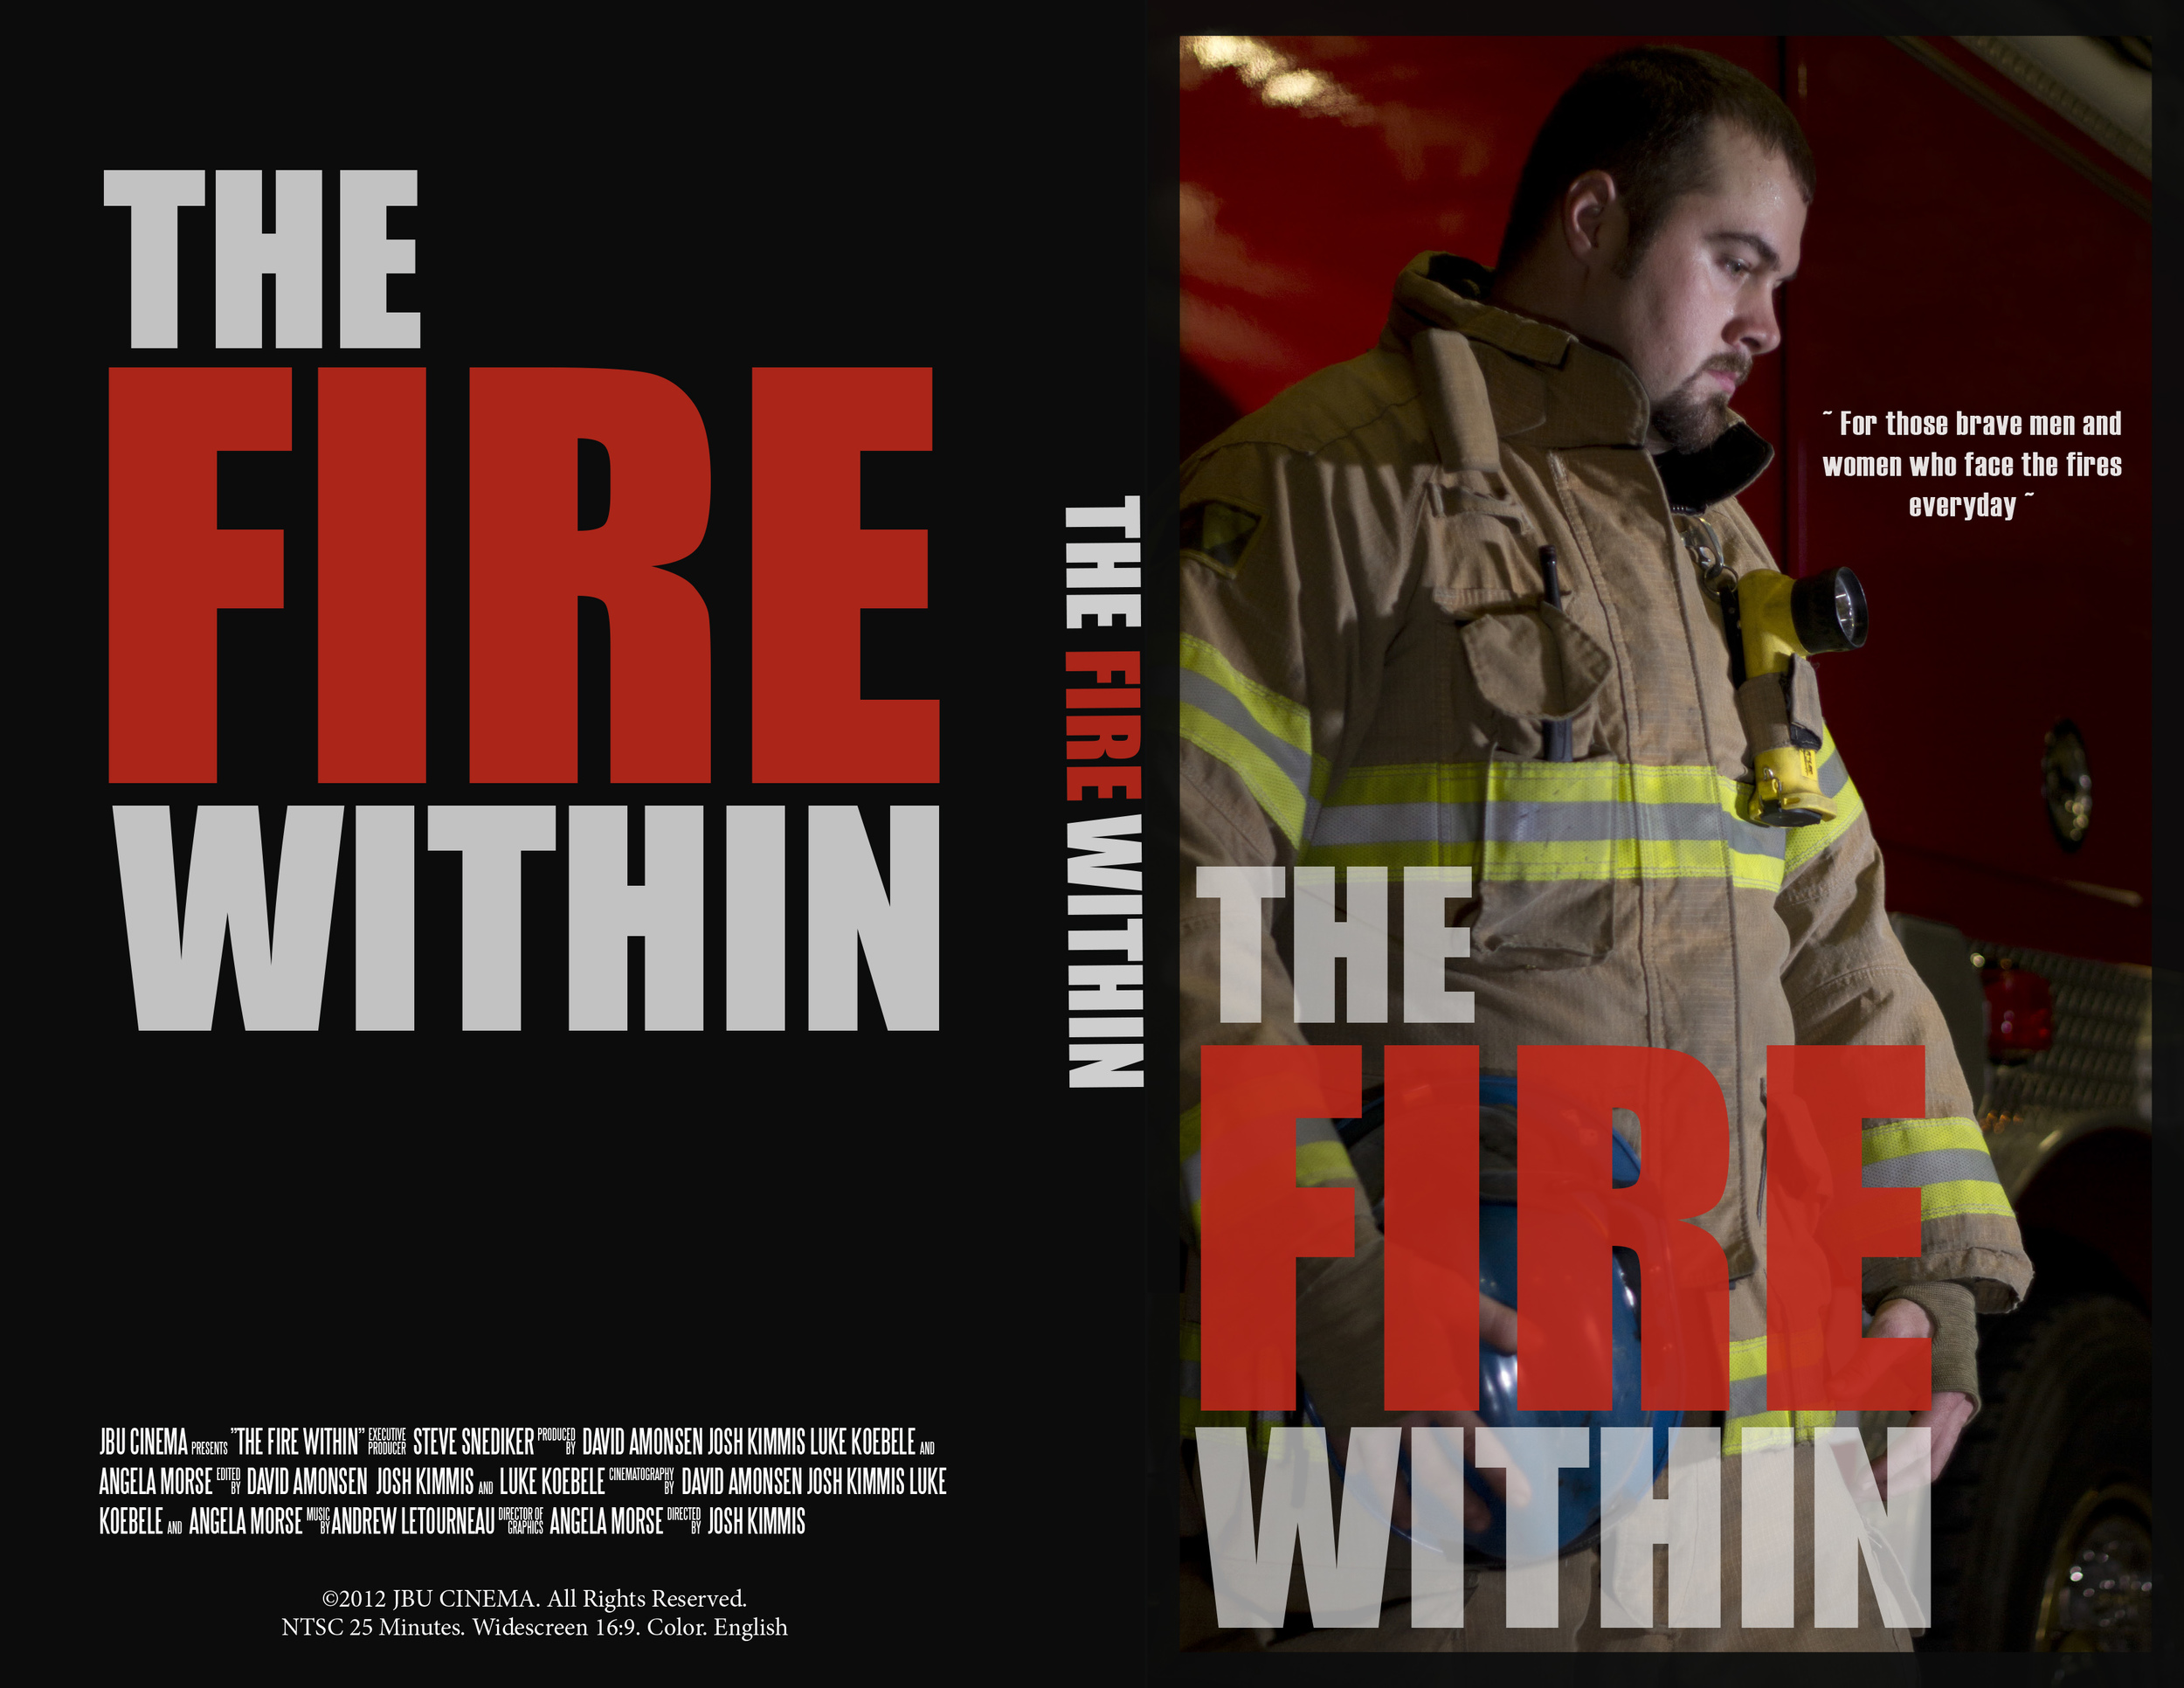 THE FIRE WITHIN - cover art